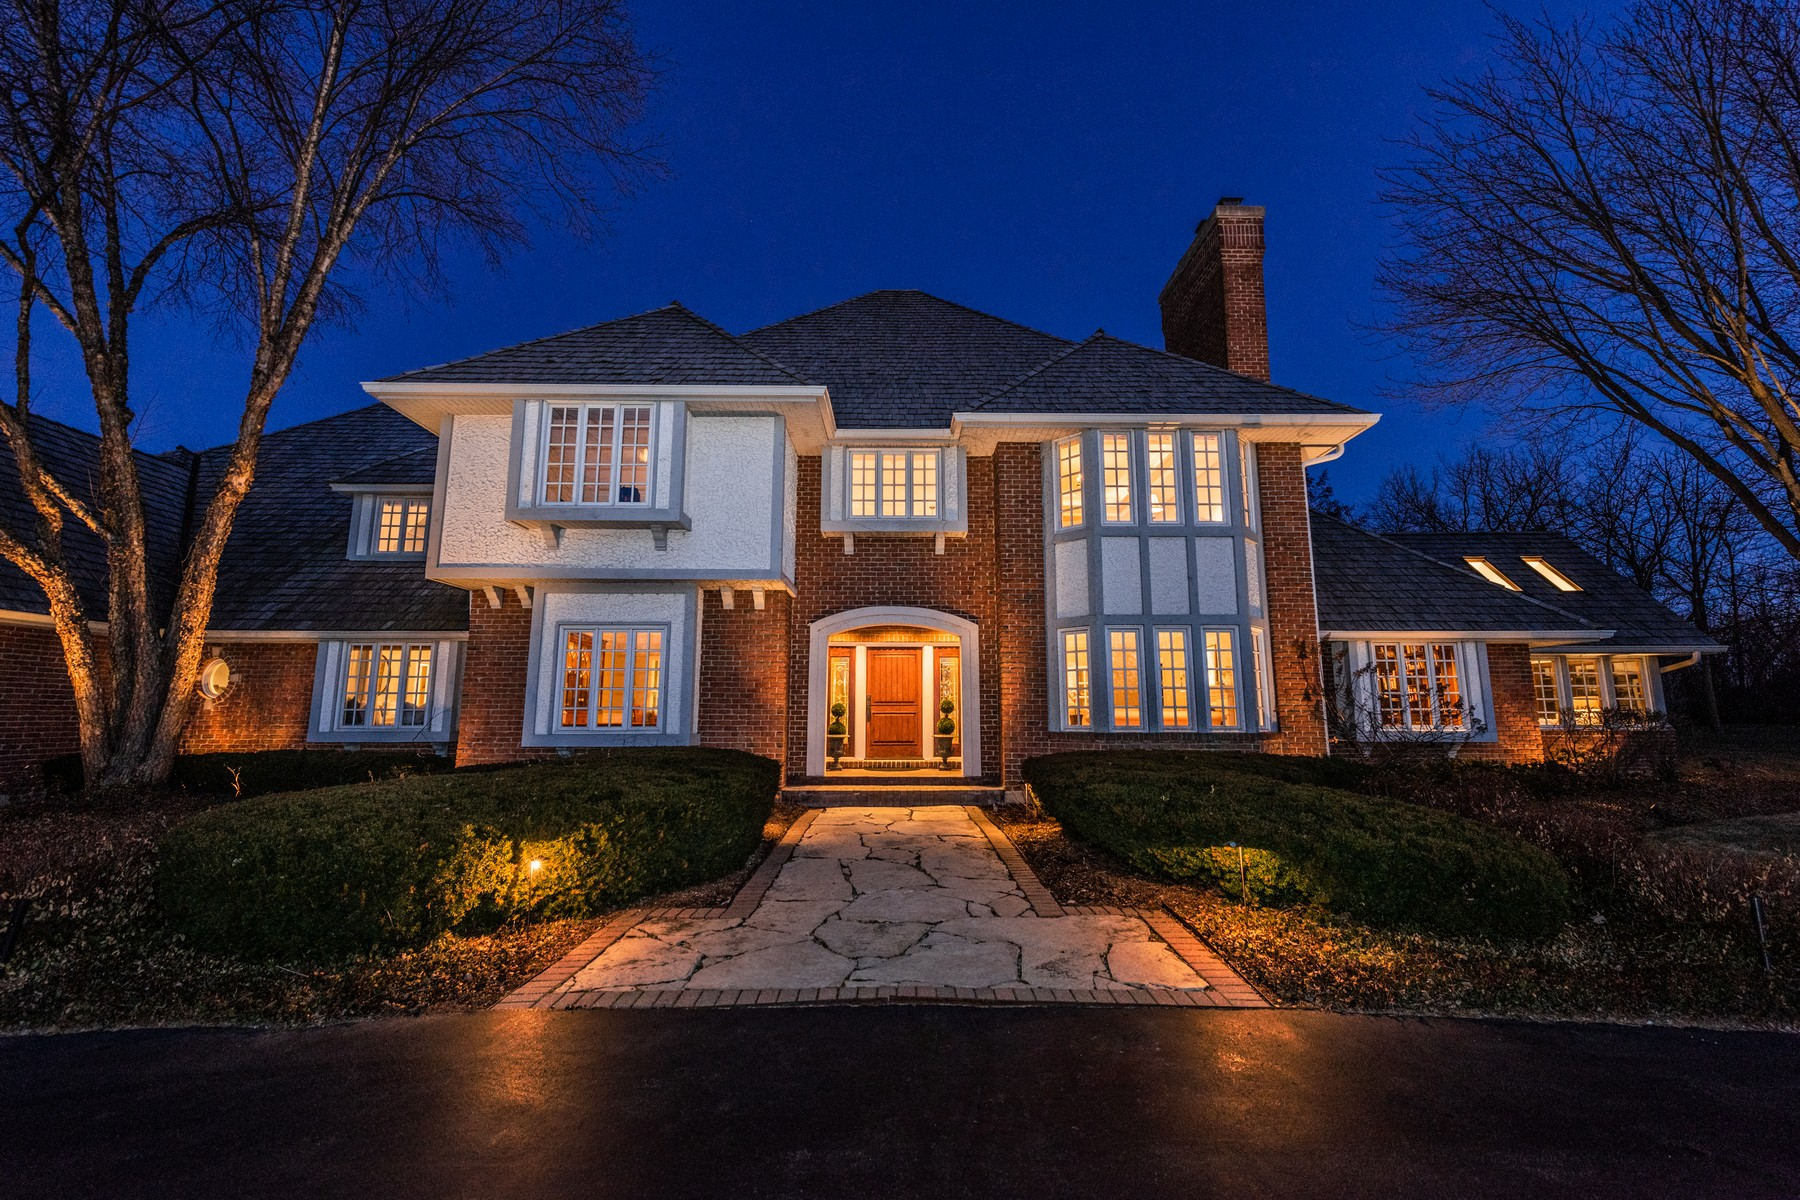 Single Family Home for Sale at Stunning Home 66 Coventry Lane North Barrington, Illinois 60010 United States